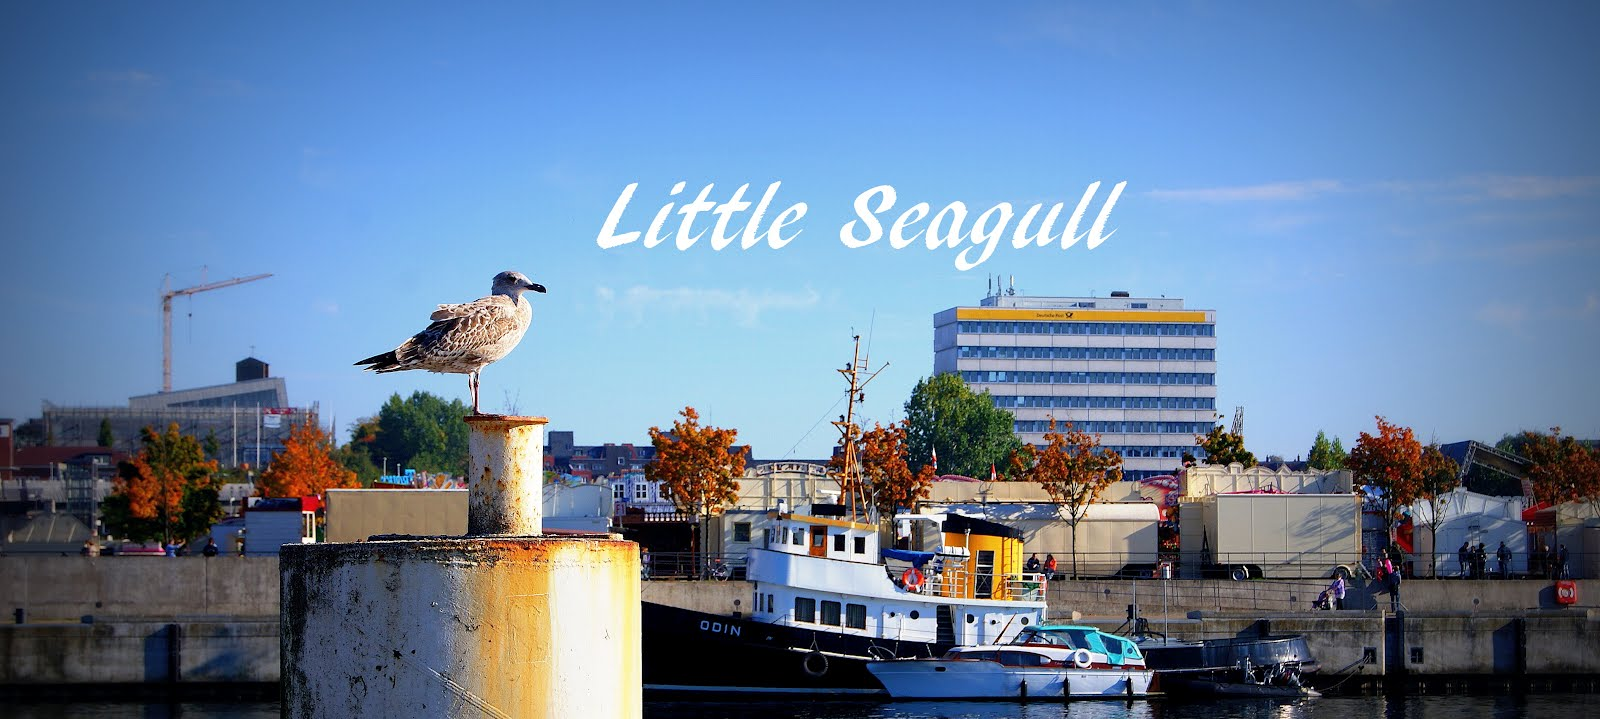 little seagull